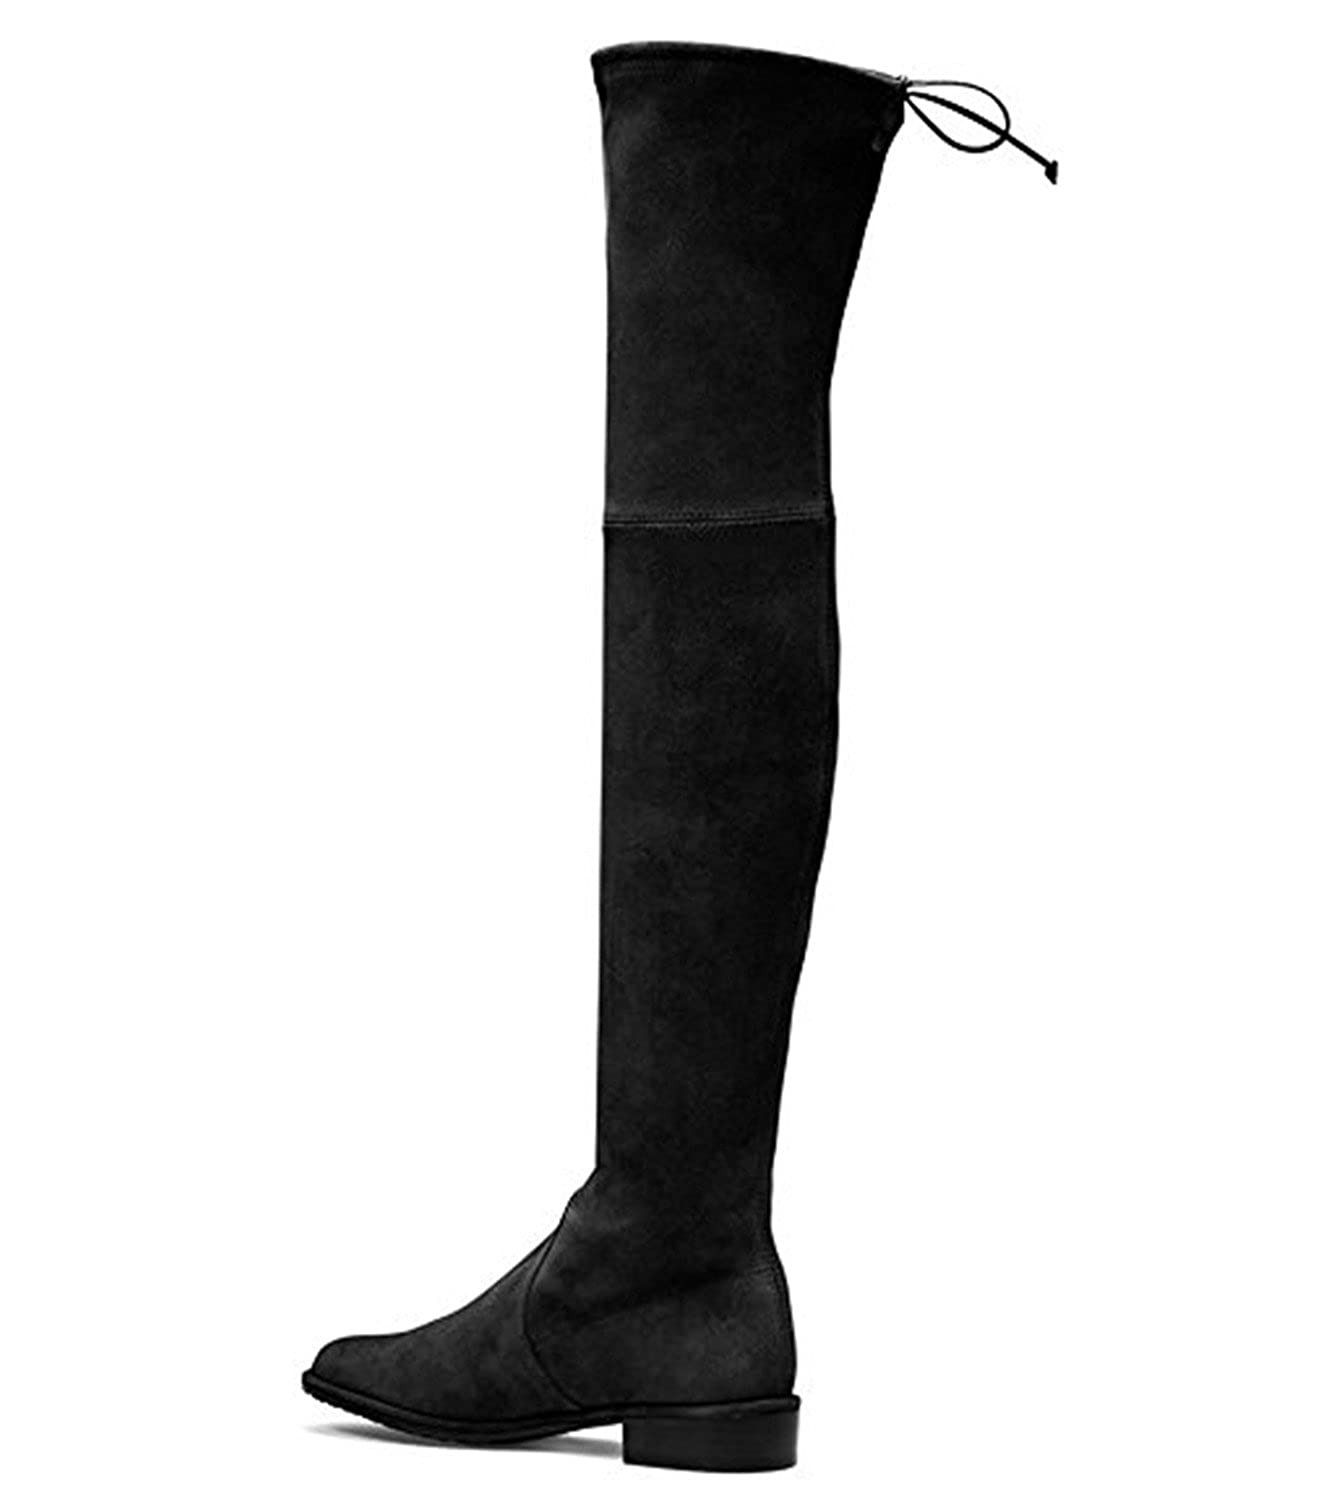 56dfd4c62da Knee High Boots,Women's Round Toe Thigh High Over The Knee Boots Stretch  Suede Flat Heel Tall Boots